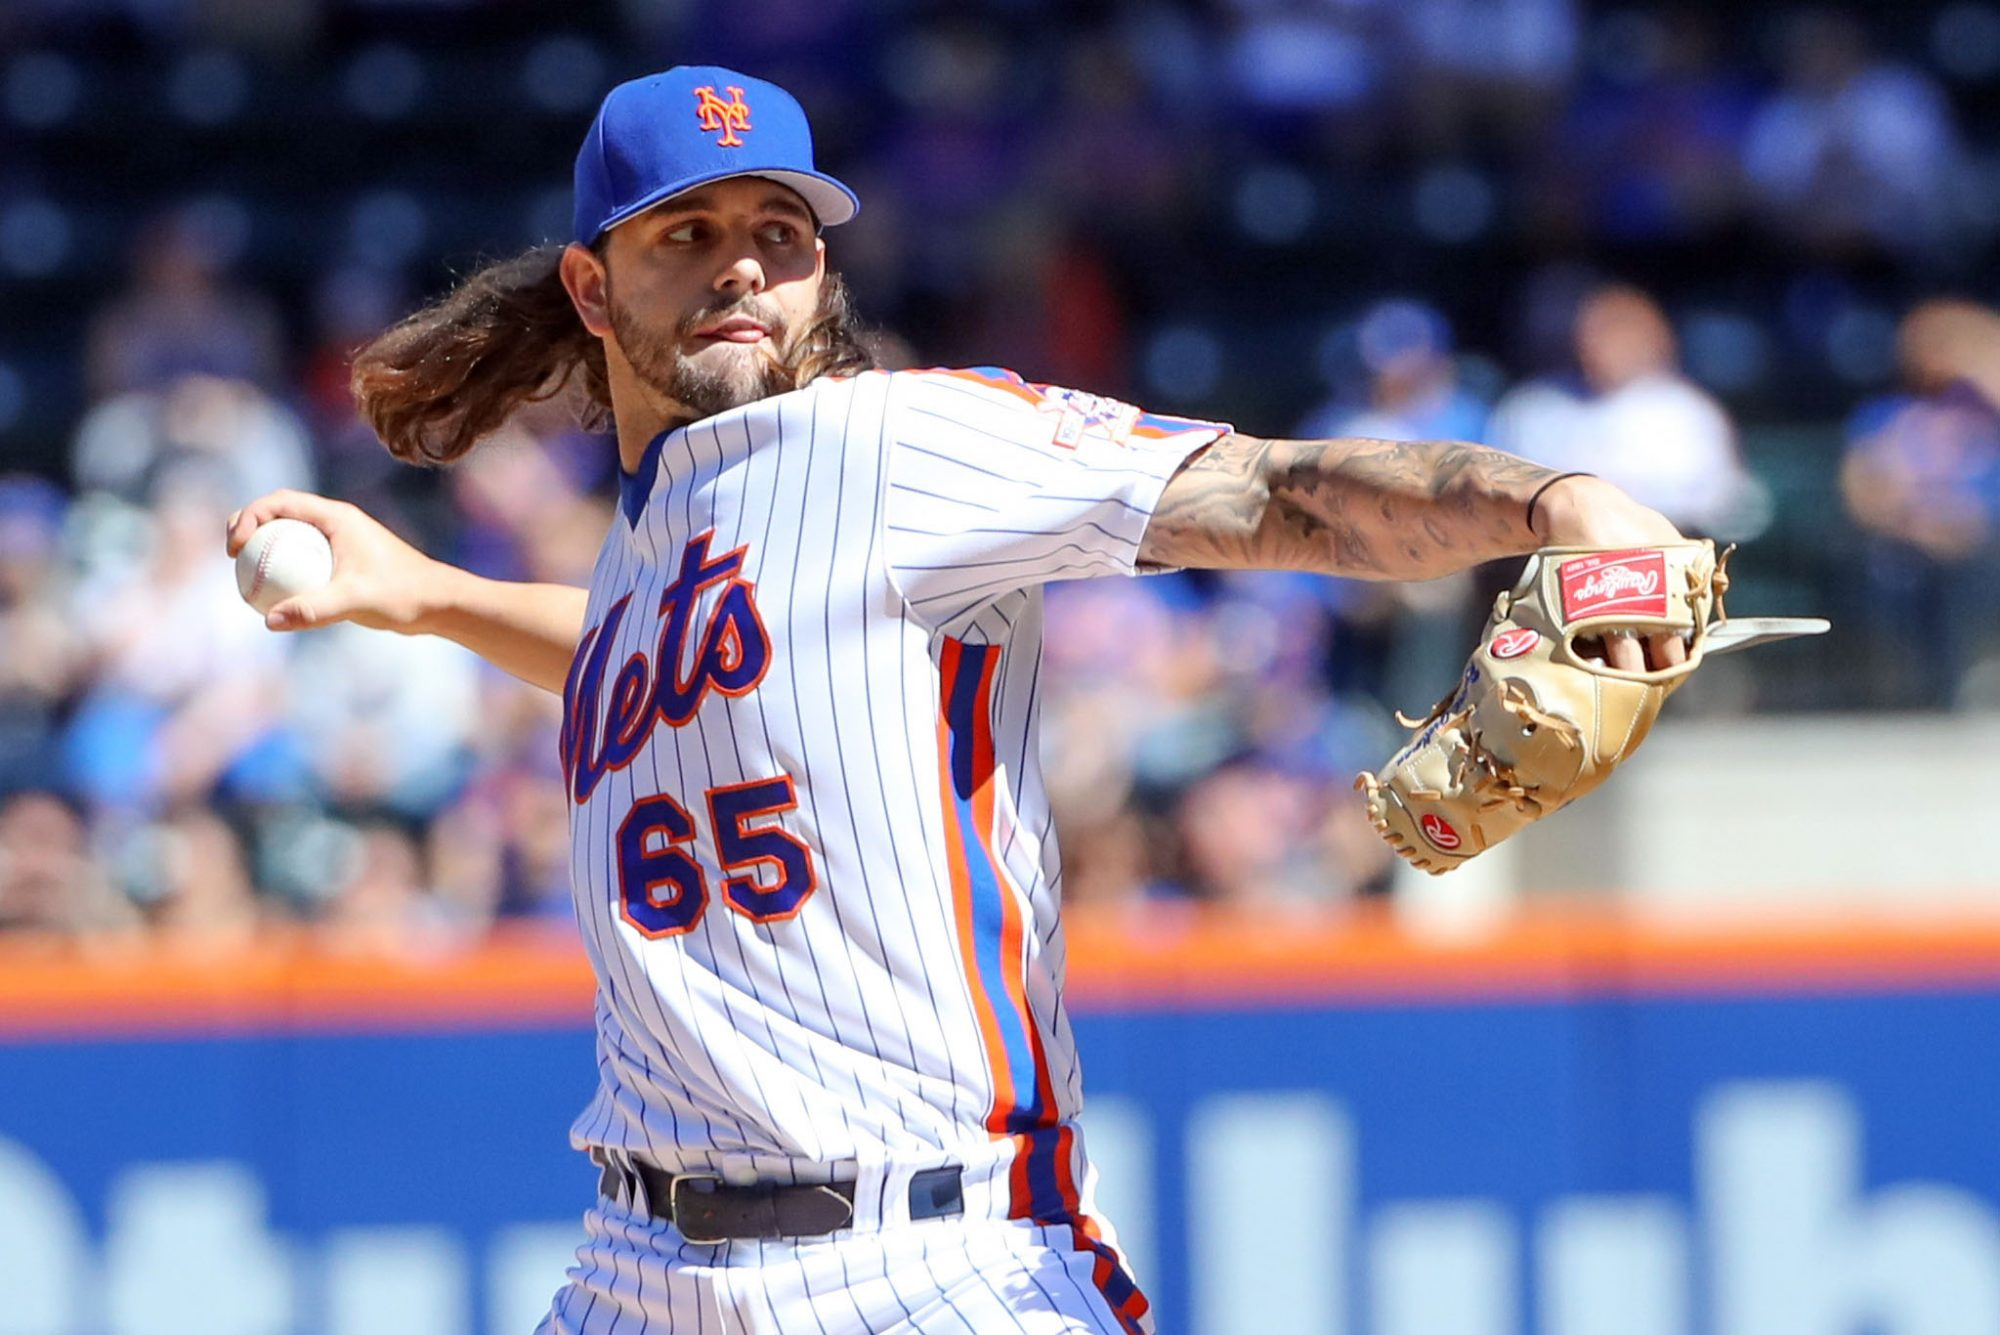 New York Mets: Open competition is the only way to determine final rotation spot